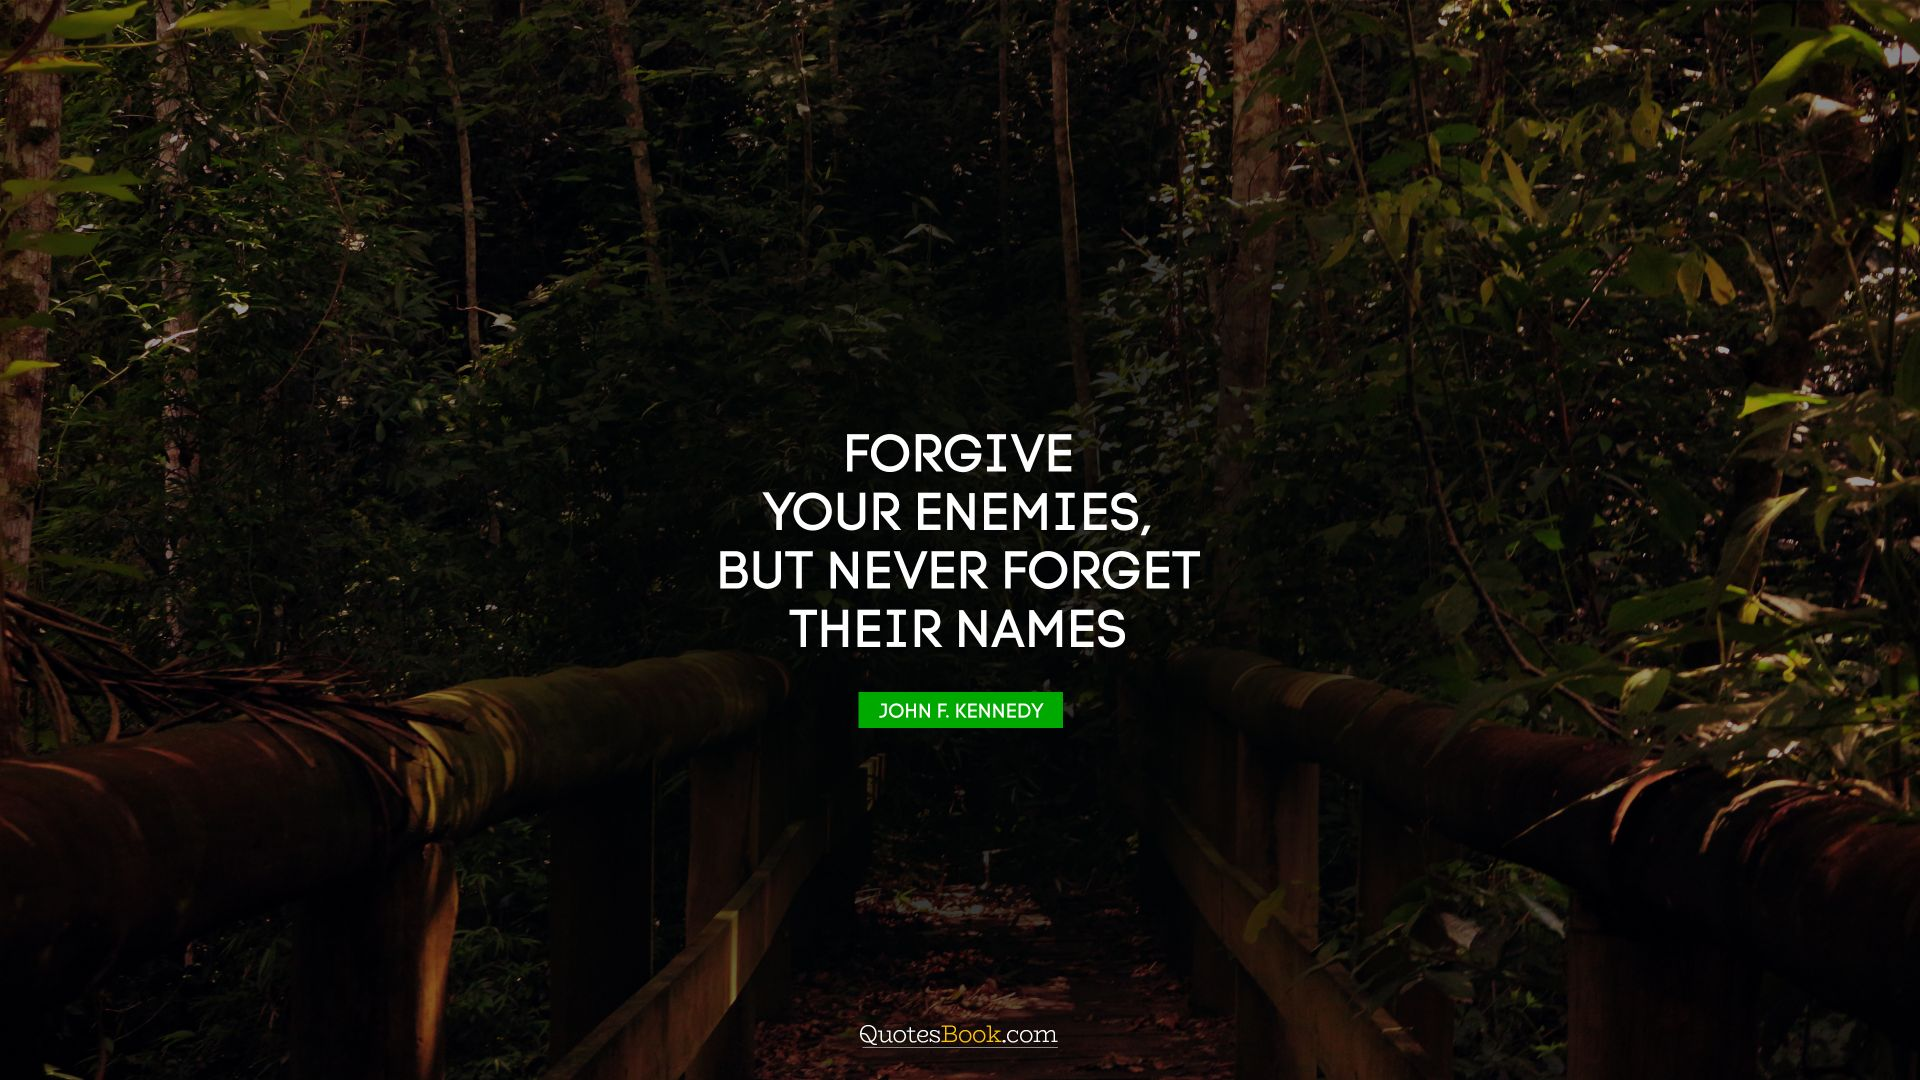 Forgive your enemies, but never forget their names. - Quote by John F. Kennedy